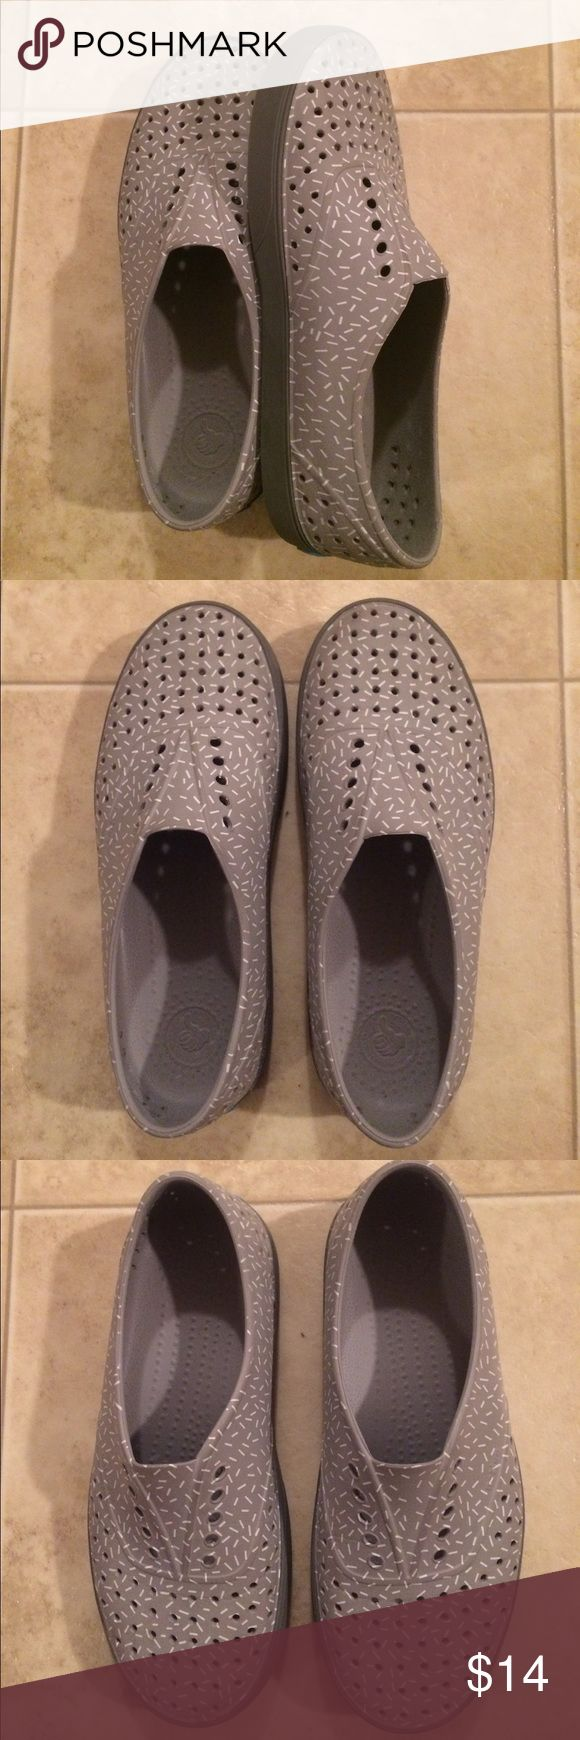 $10 women's native brand slide on shoes Worn once! Excellent condition. Native Shoes